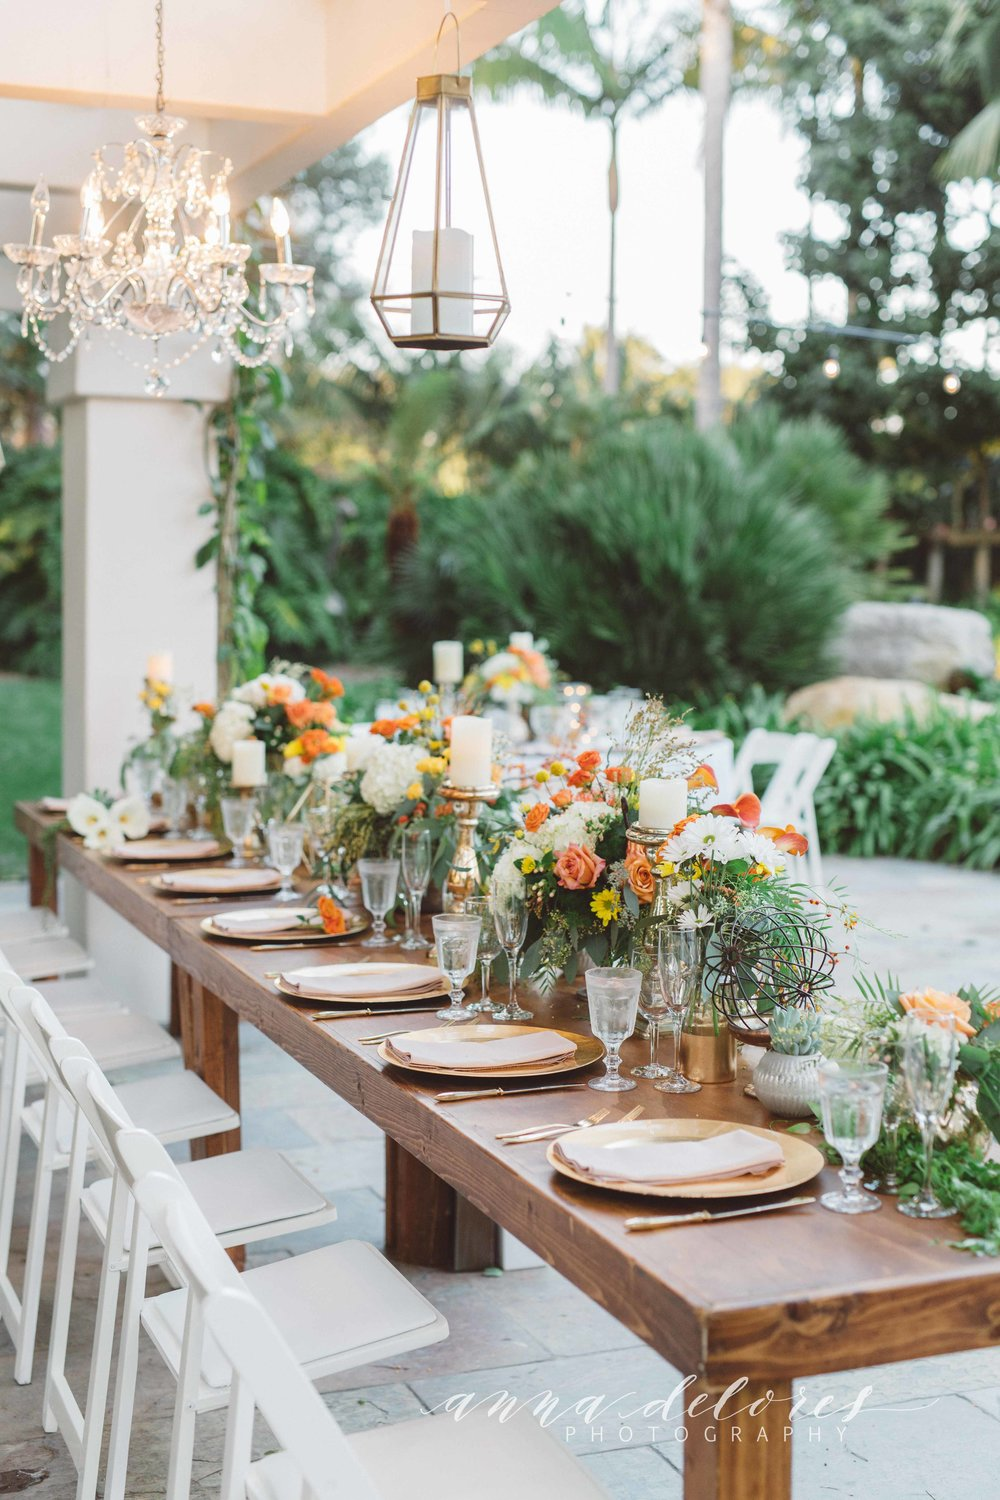 santabarbarawedding.com | Savoir Faire Catering | Anna Dolores Photo | Table Lay out